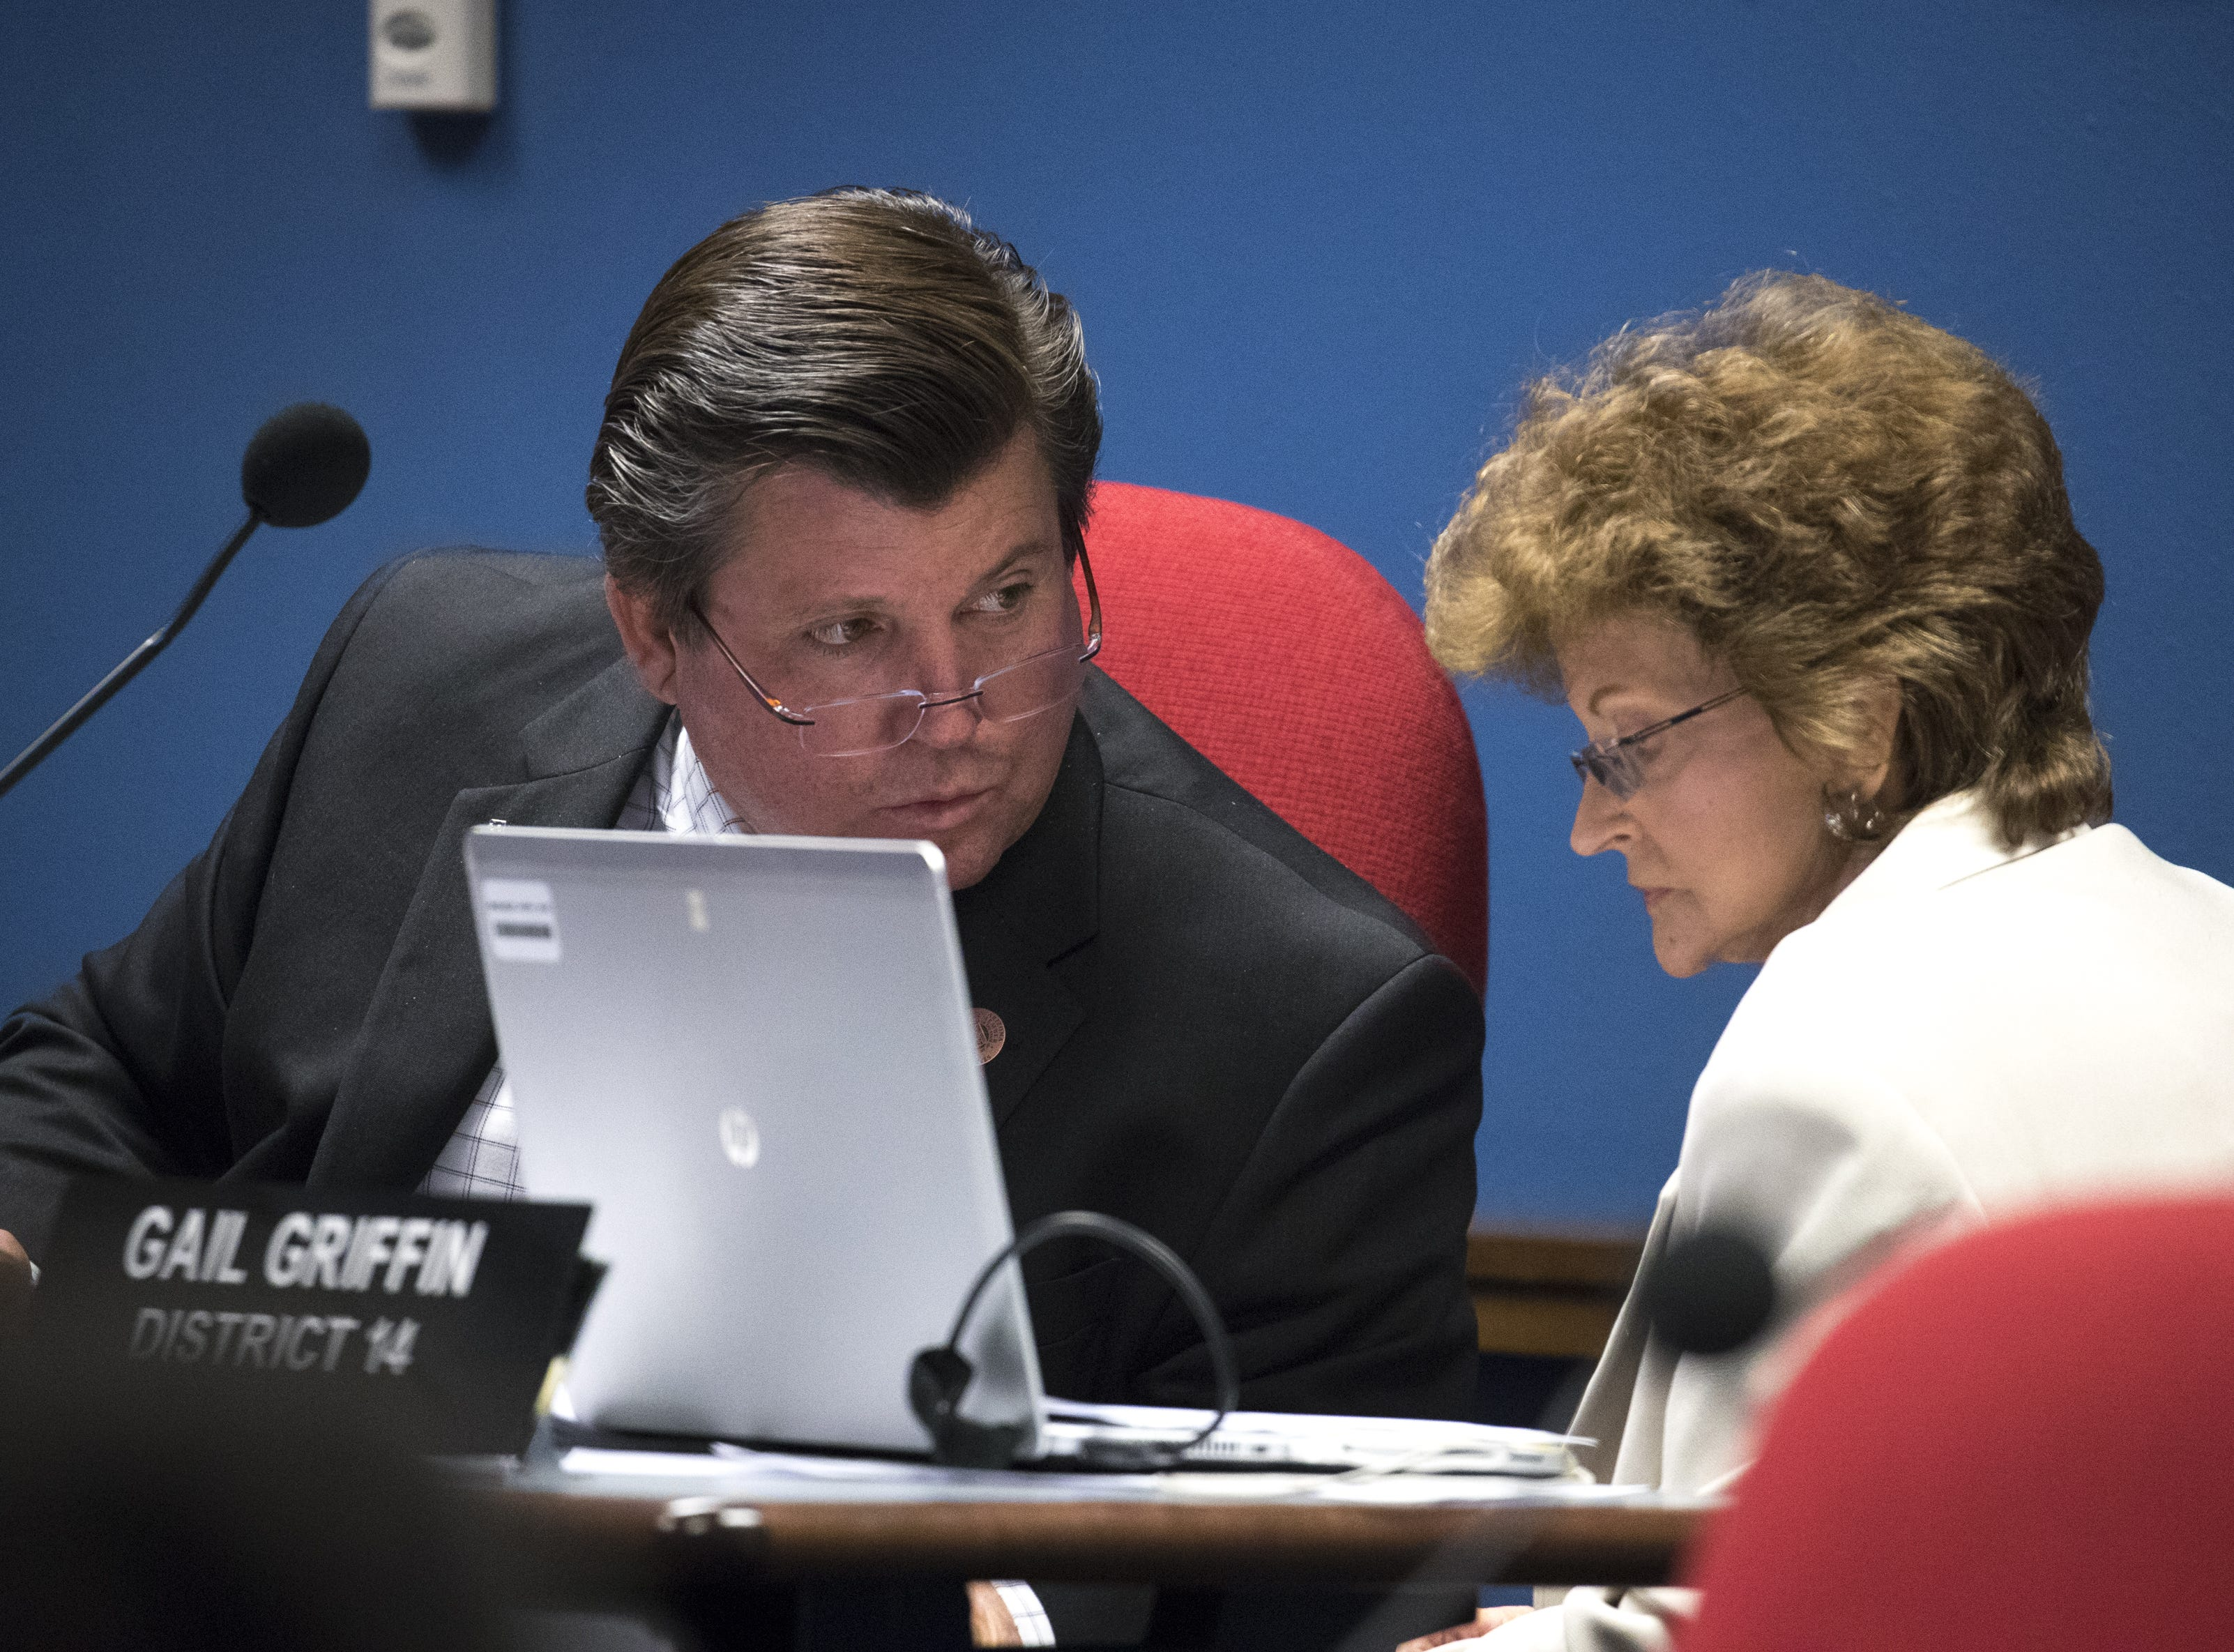 Rep. Timothy M. Dunn (left, vice chairman) talks with Rep. Gail Griffin (chairwoman) during a hearing on HB 2540, Jan. 29, 2019, at the Arizona House of Representatives' Committee on Natural Resources, Energy and Water at the Arizona Capitol.